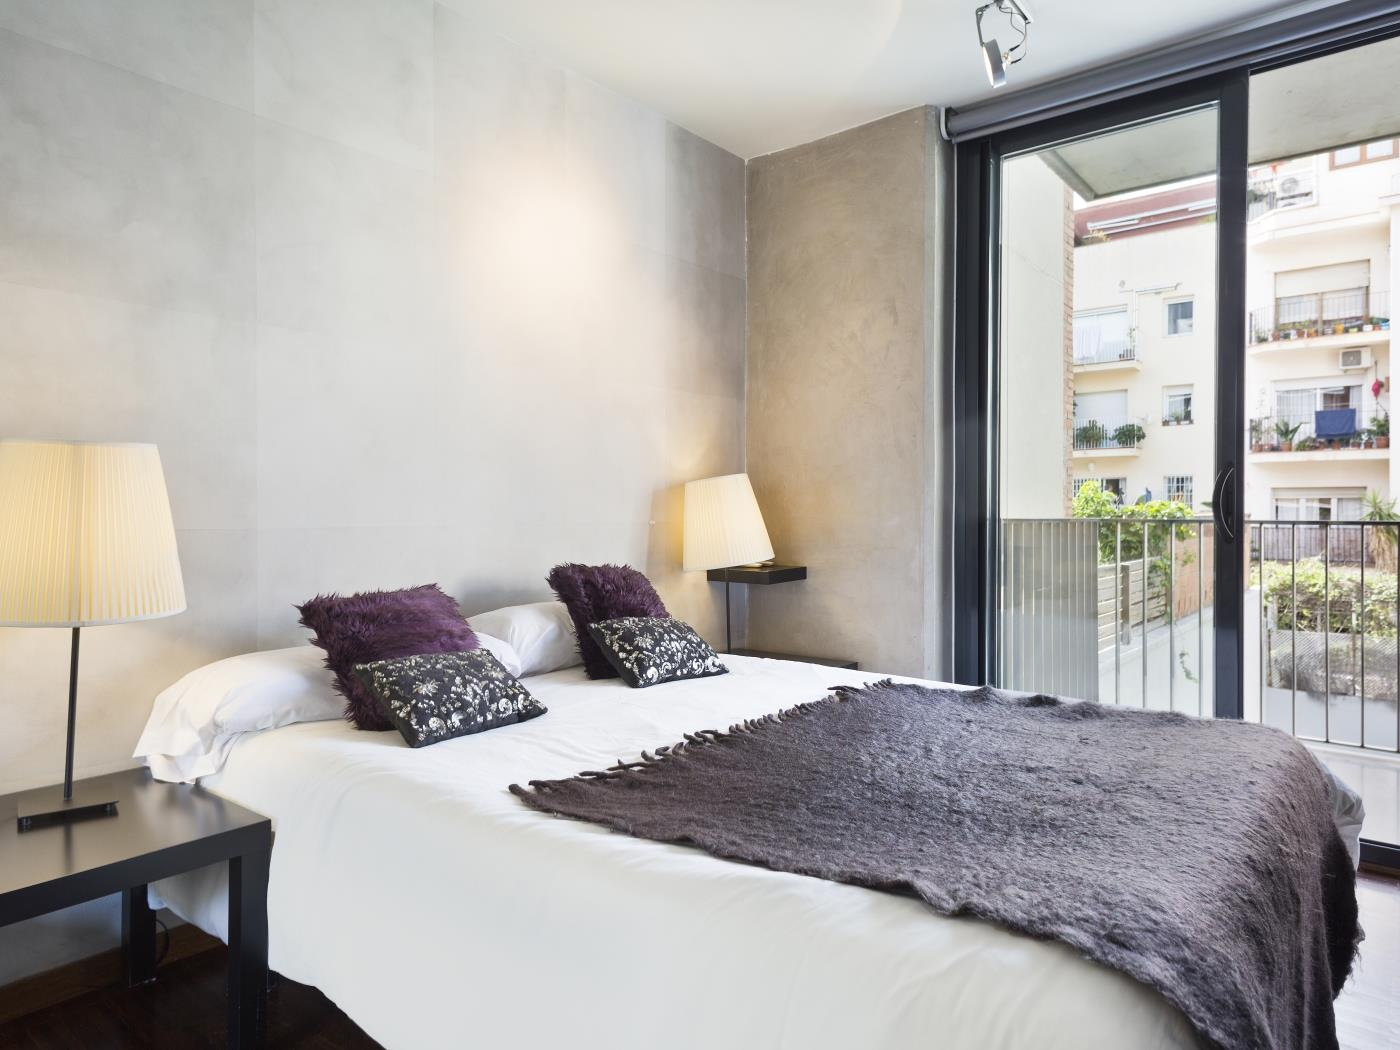 Executive Apartment in Sarrià – Pedralbes - My Space Barcelona Aпартаменты